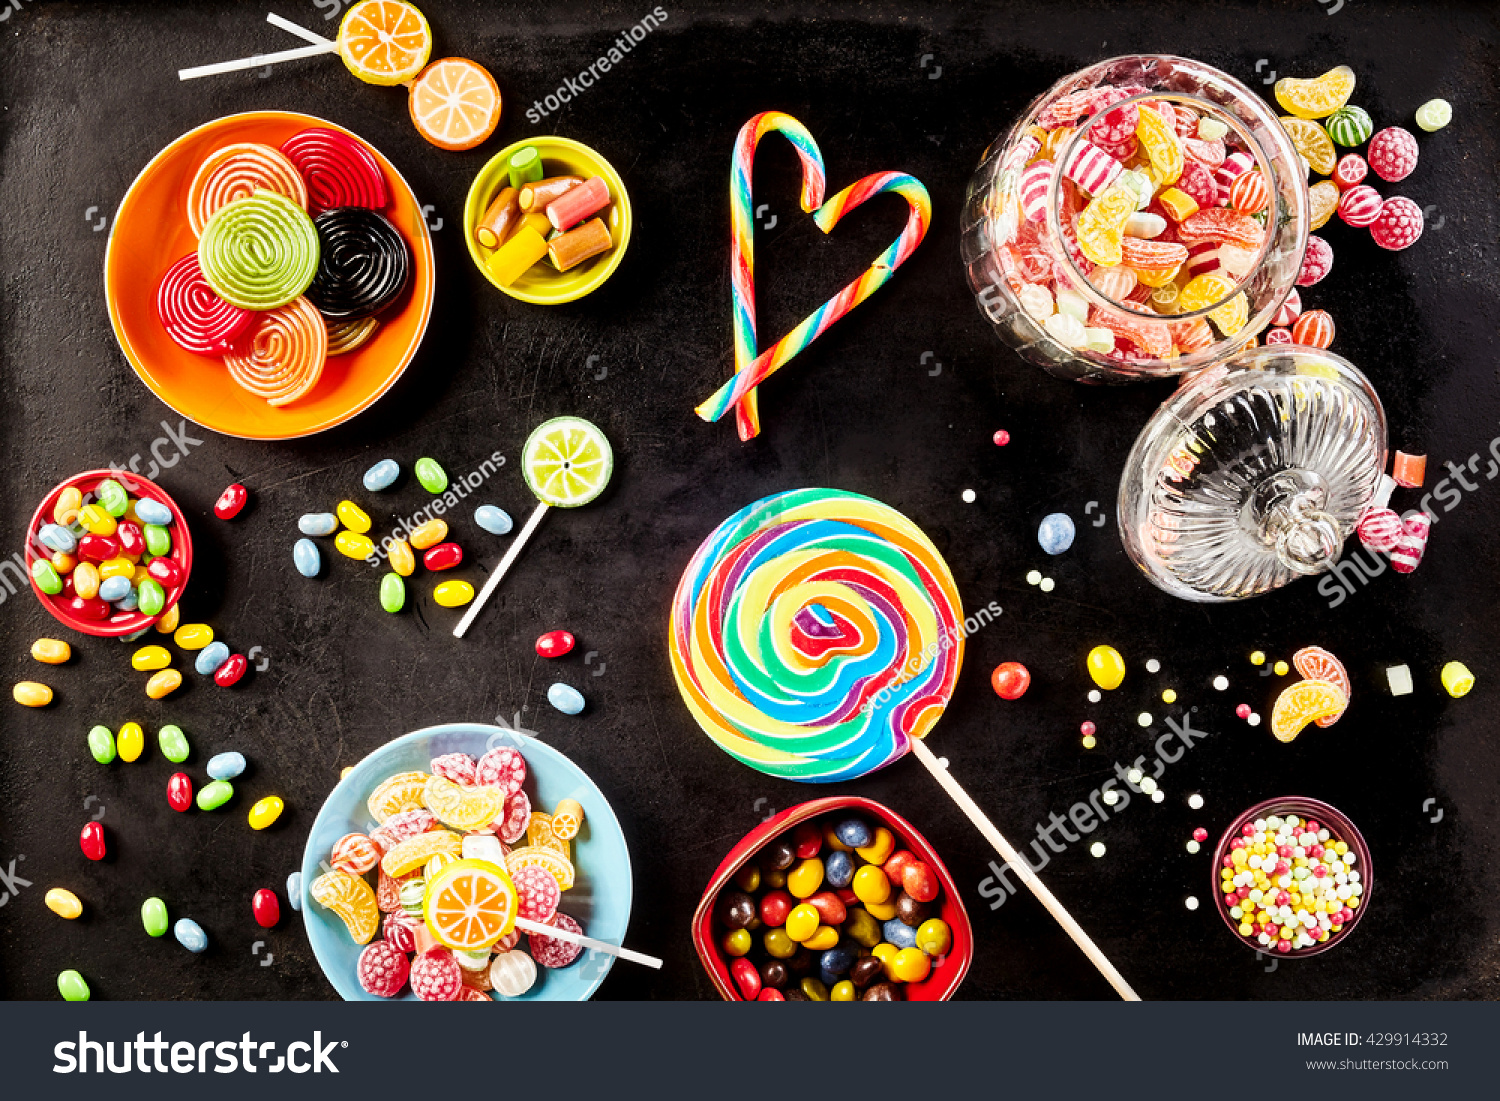 Bowls Yummy Jelly Beans Licorice Rolls Stock Photo